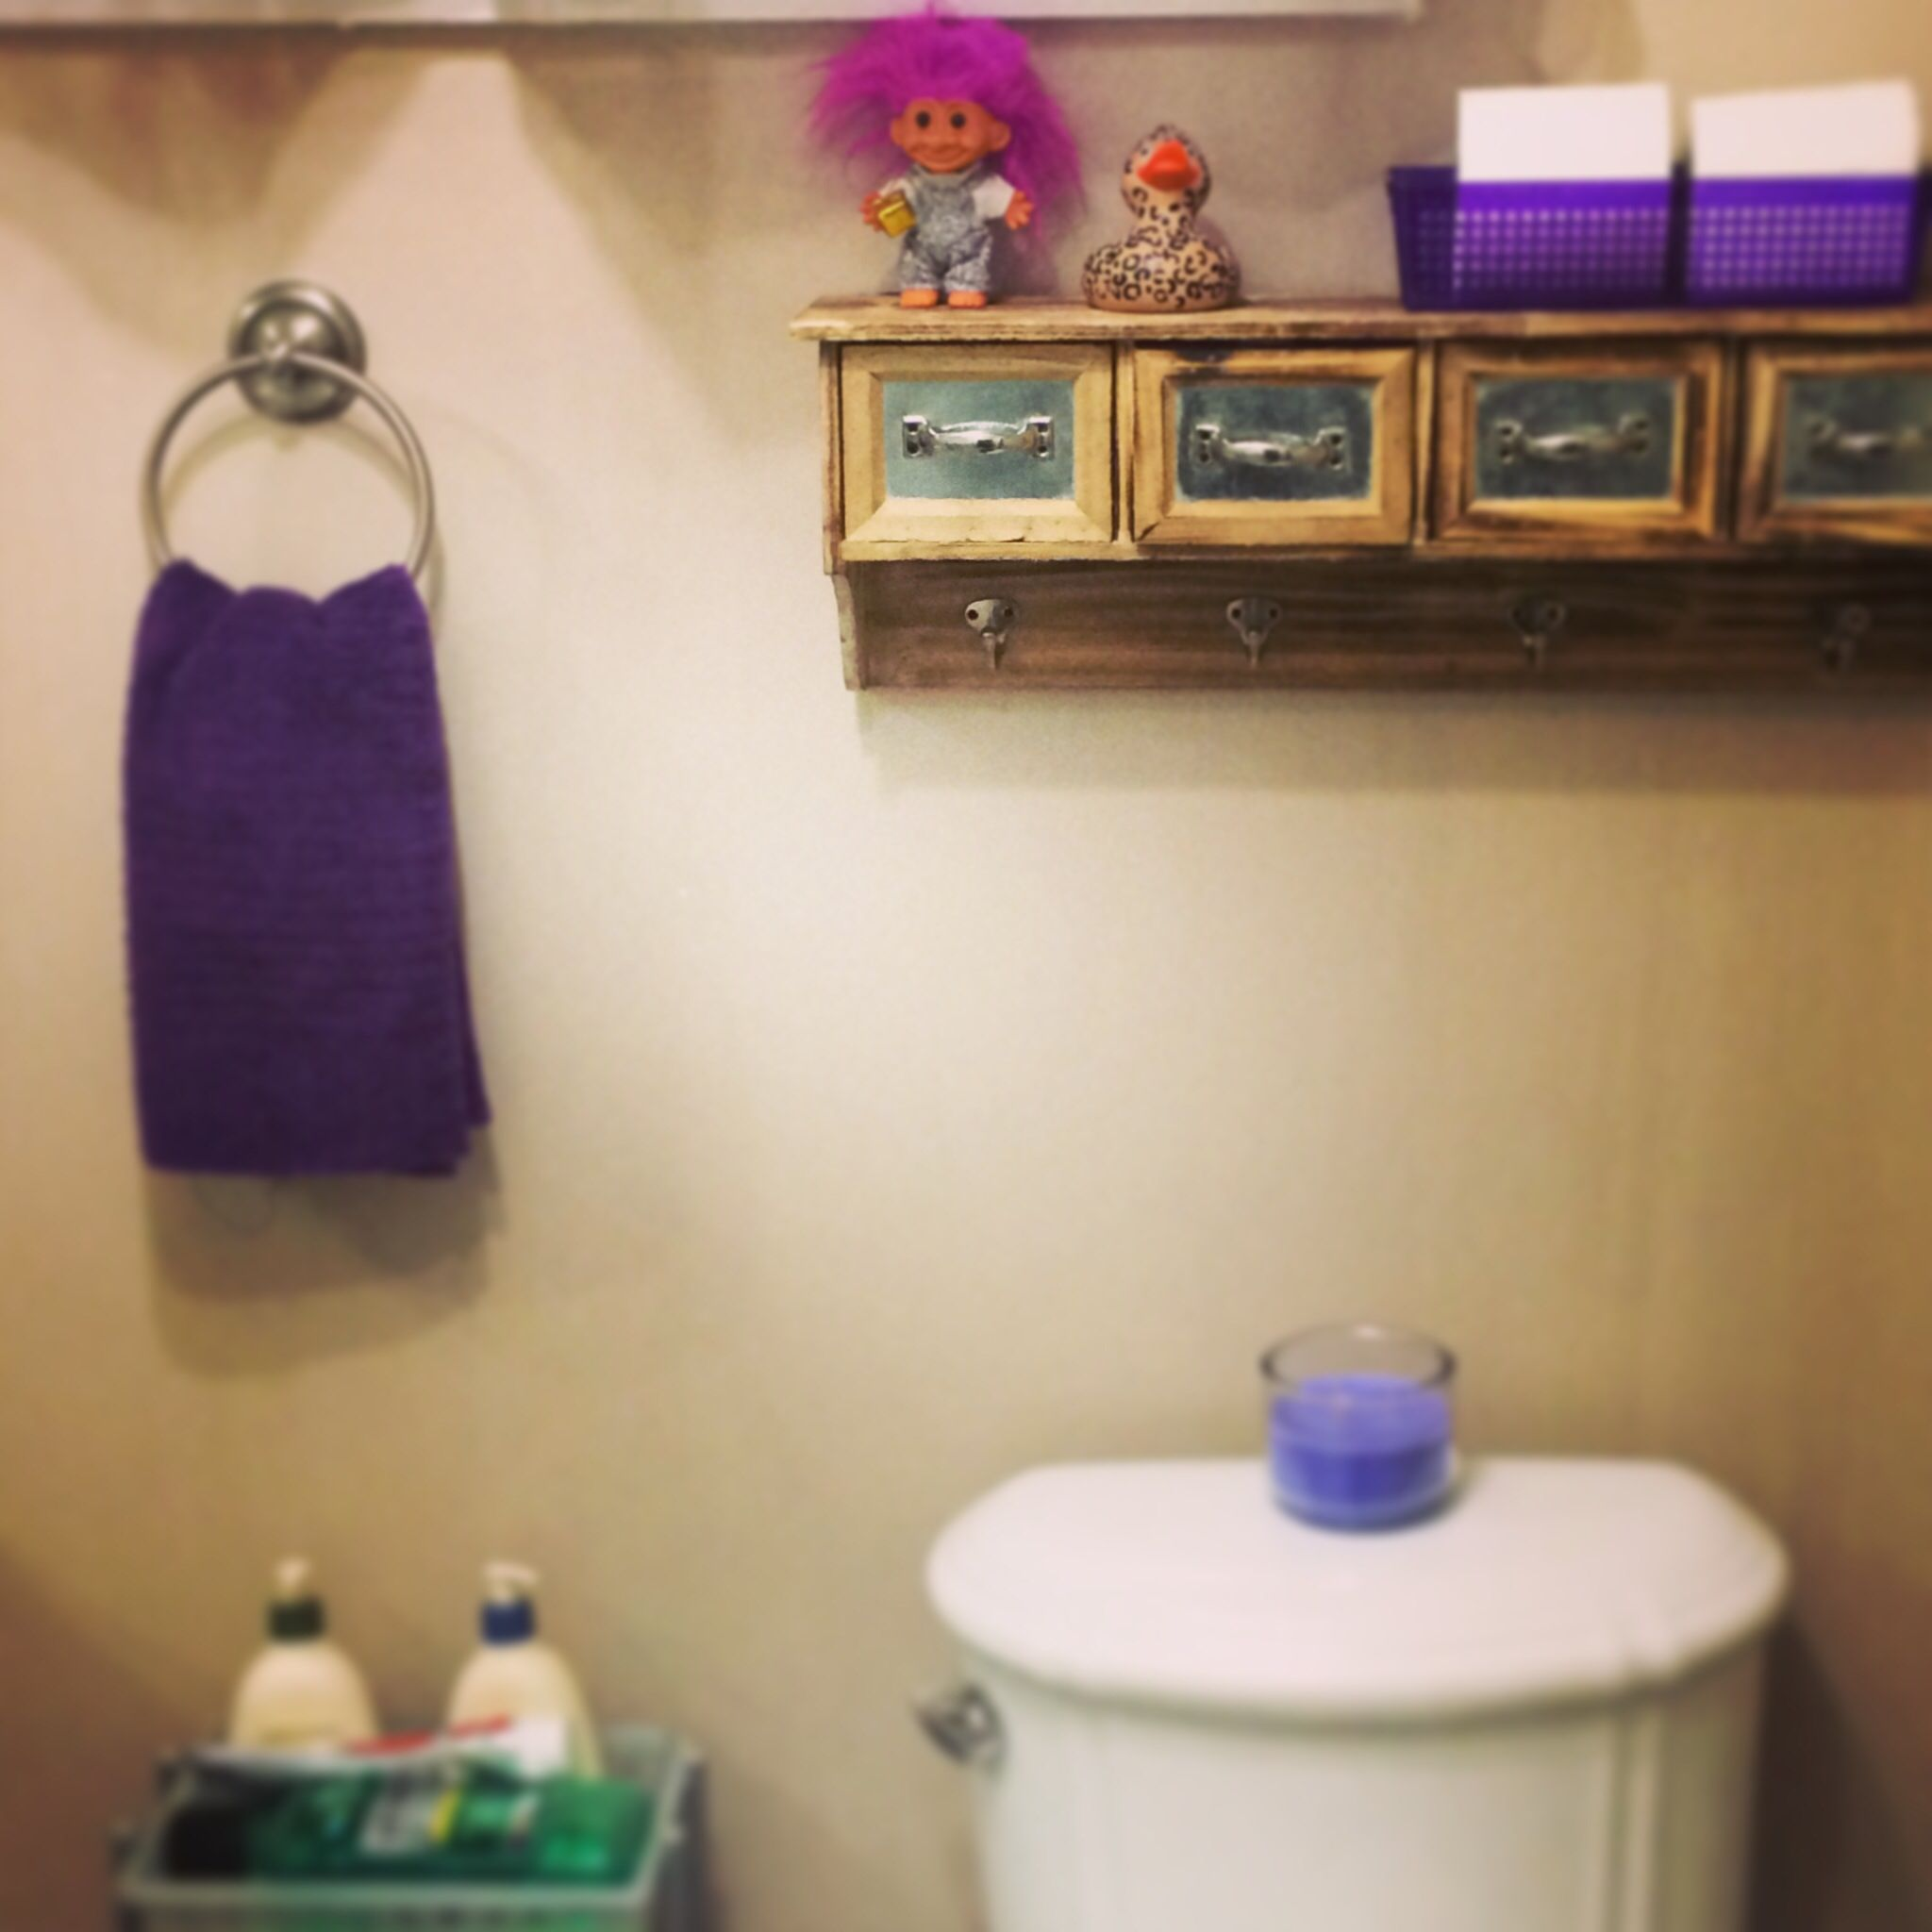 Purple accents brighten the drab paint job in the bathroom. #smallspace #interiordesign